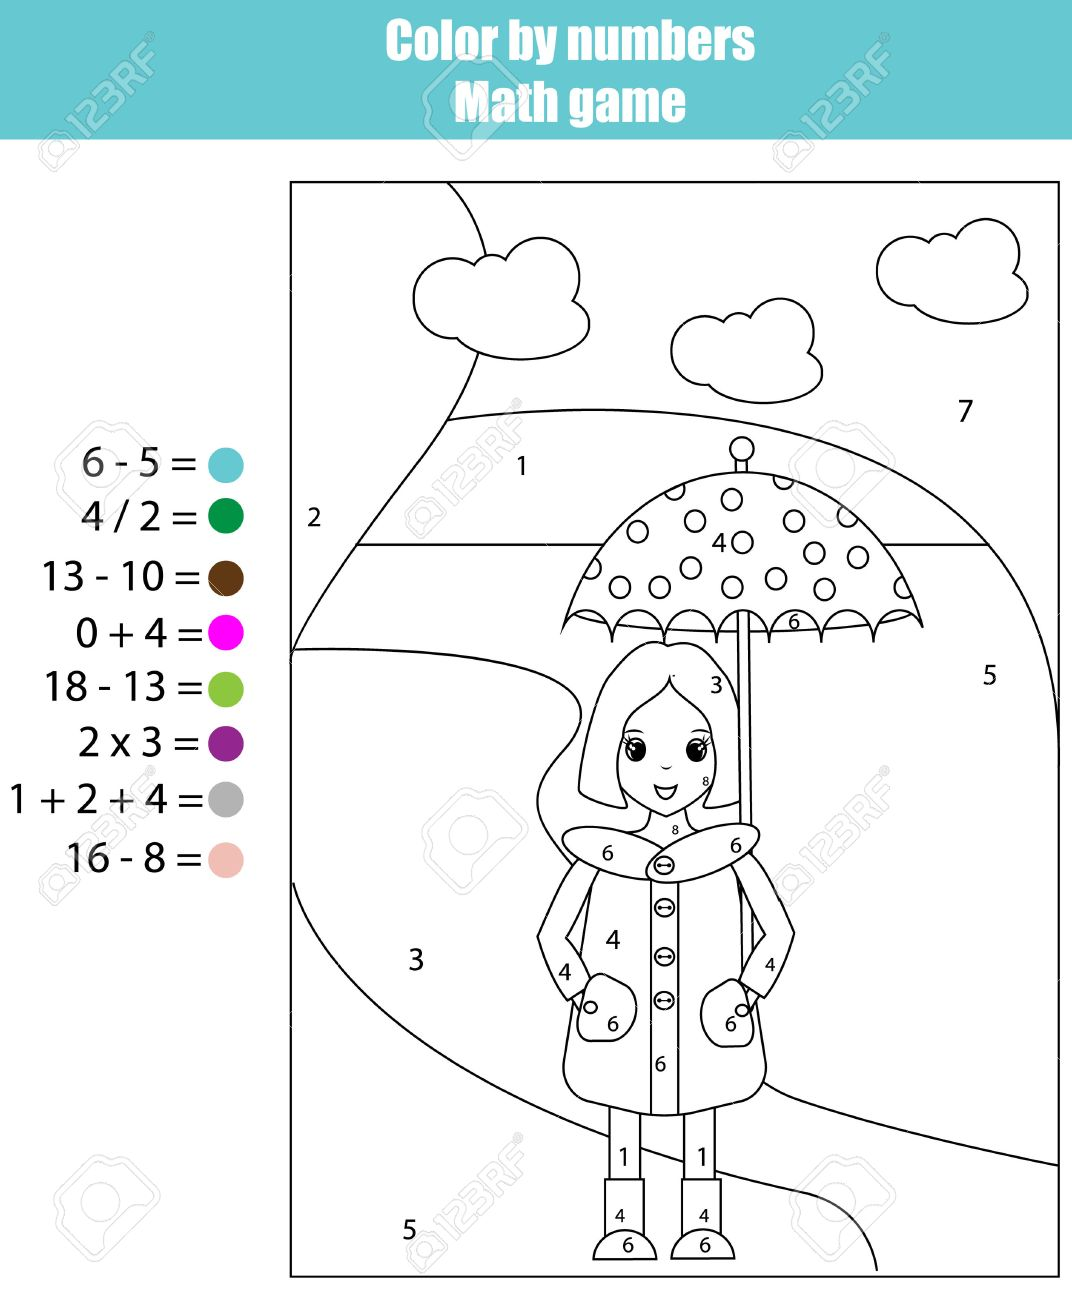 Coloring Page With Girl. Color By Numbers Math Children